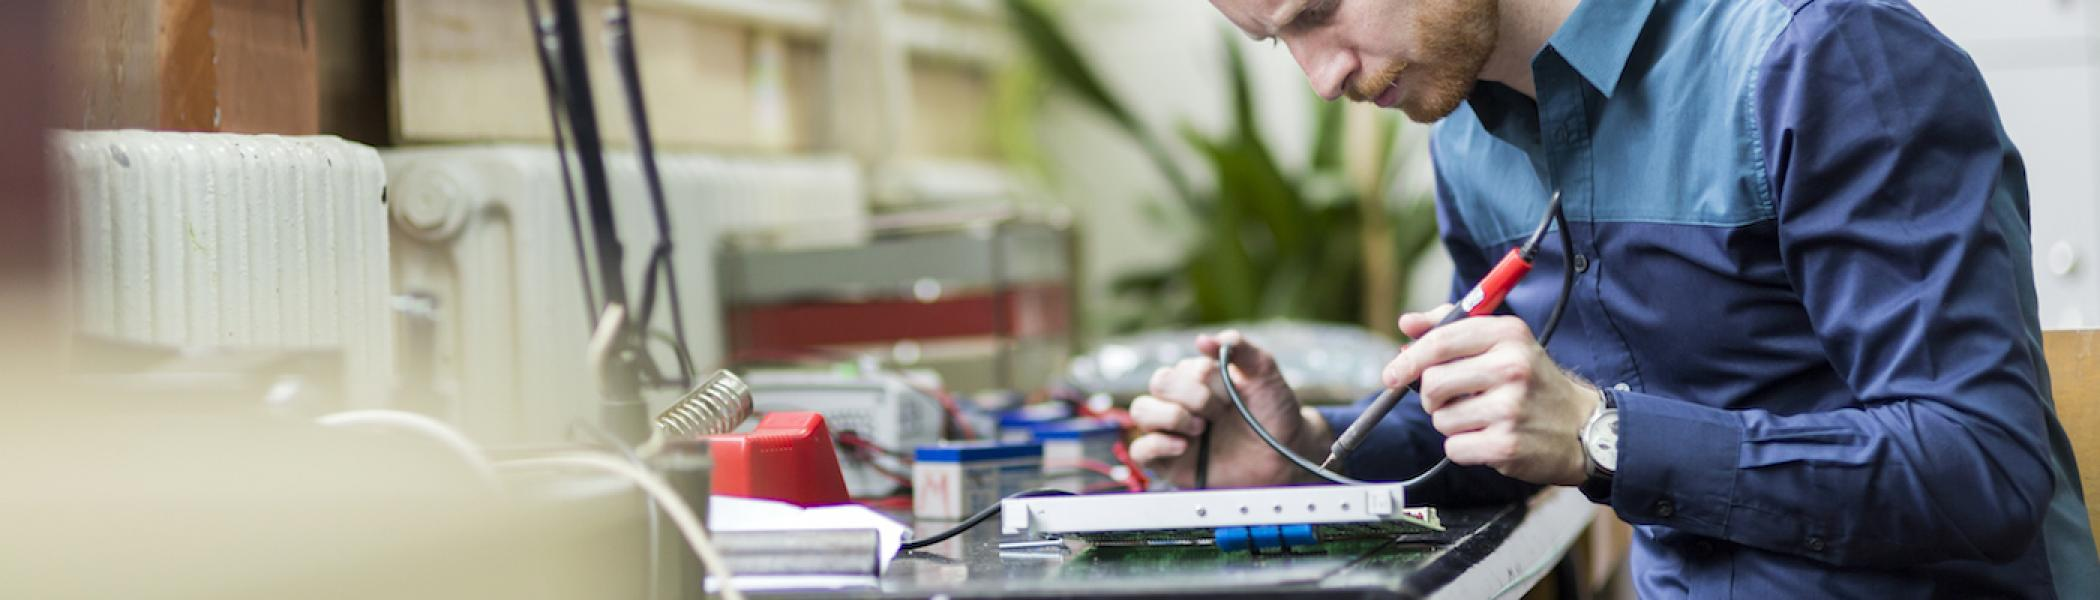 A guy working on a circuit board and concentrating on it